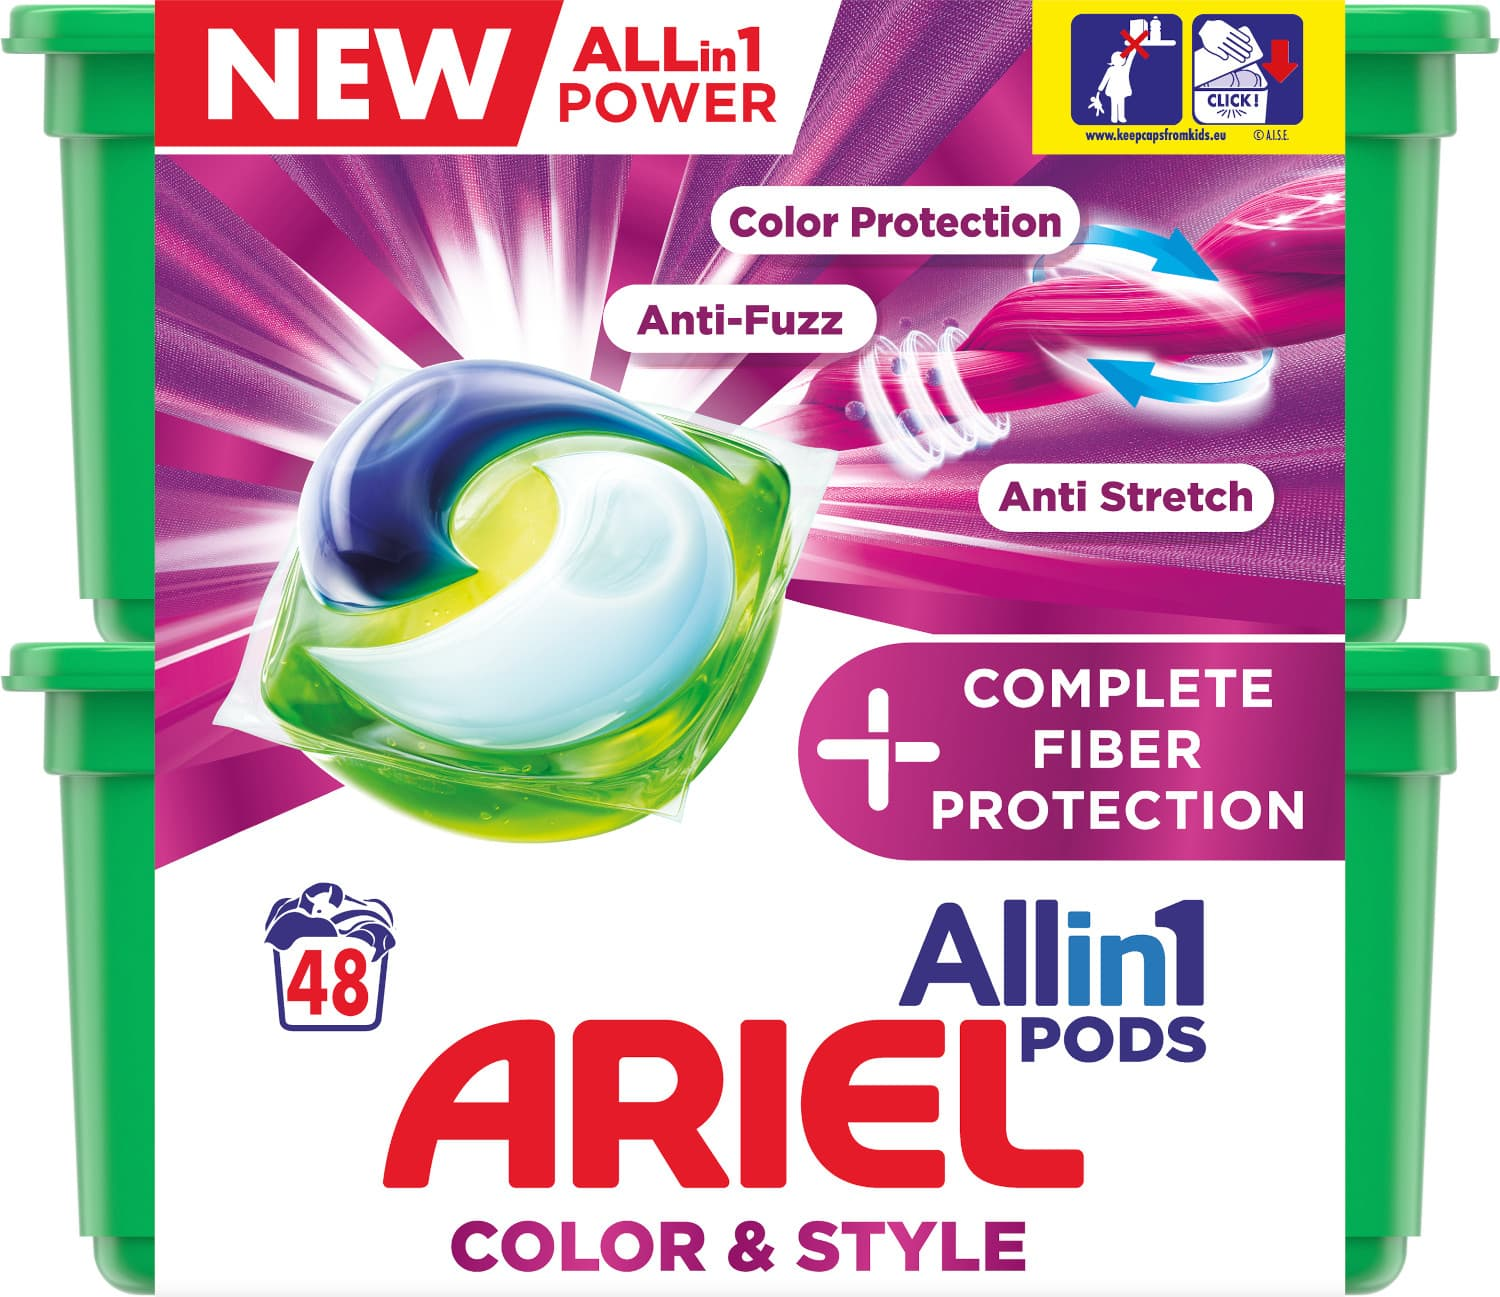 Ariel gelové kapsle All in 1 Color Complete Fiber Protection 48ks